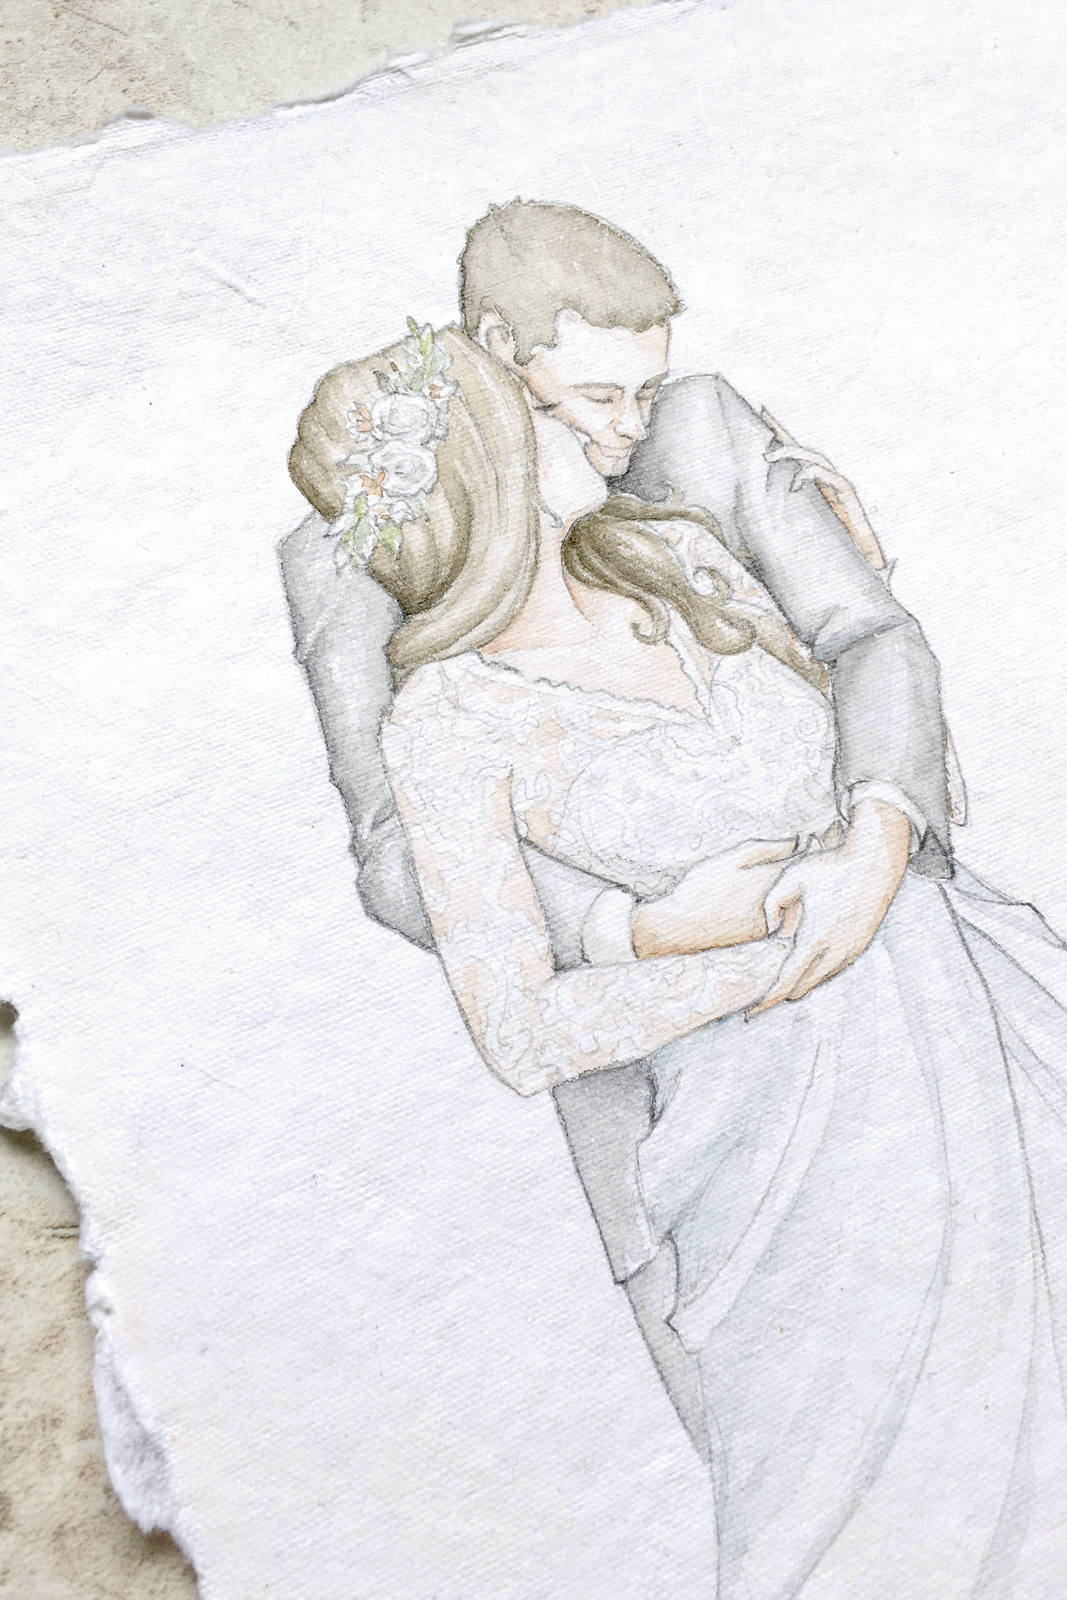 Wear your wedding dress on your anniversary  Watercolor Portraits on Handmade Paper in   Art  Pinterest